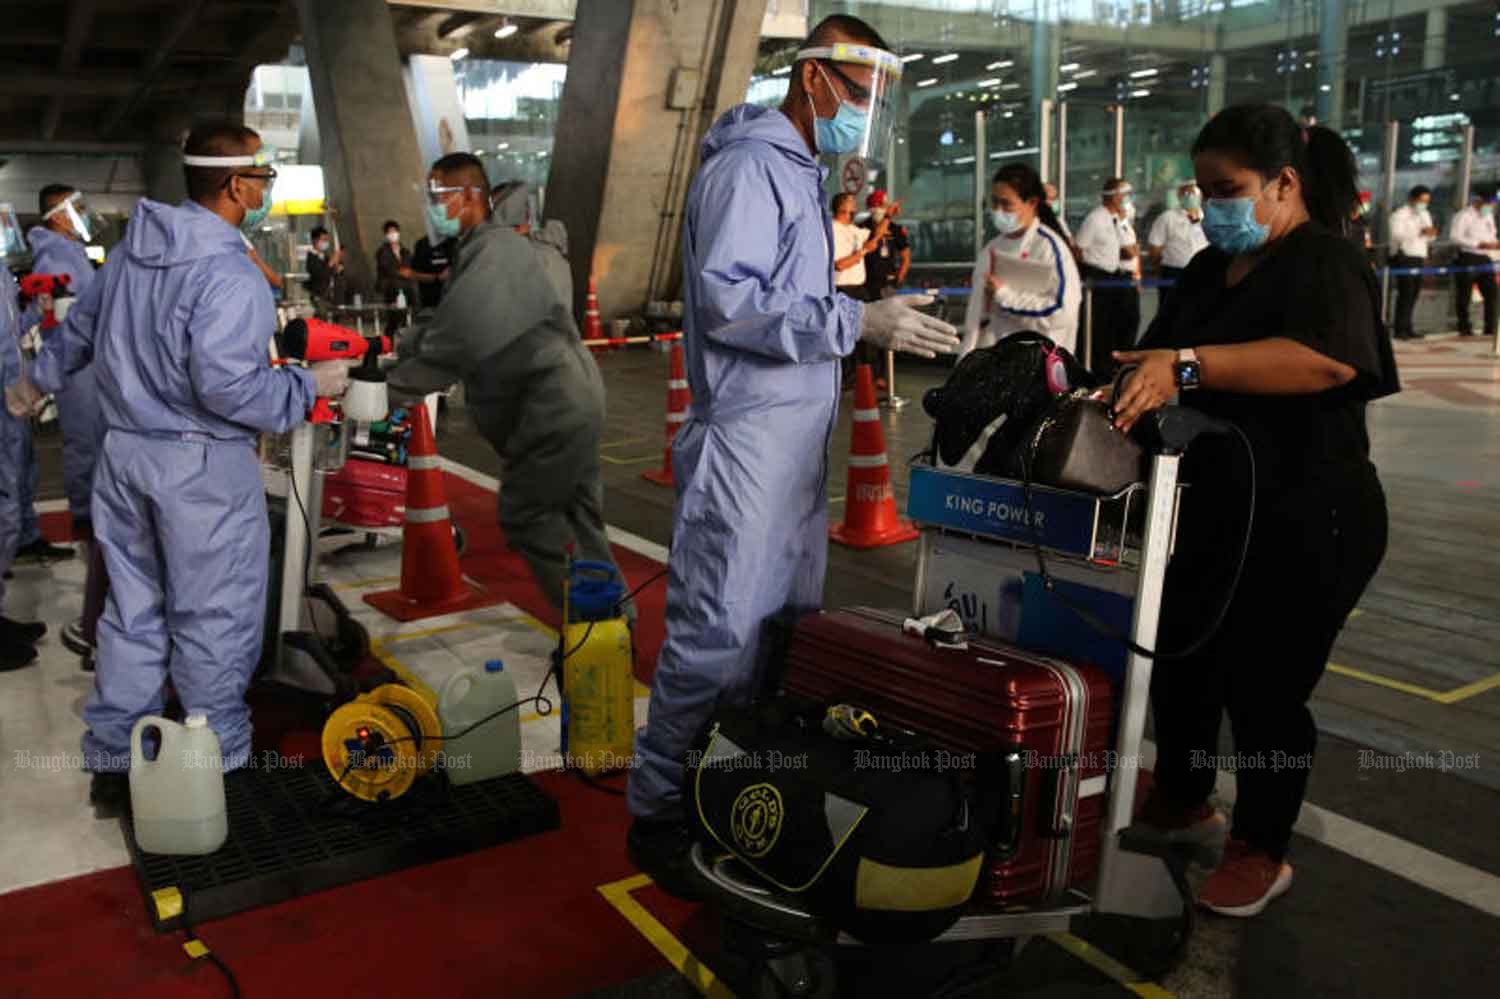 Officials sanitise the luggage of returnees at Suvarnabhumi airport in Samut Prakan province early this month. (Photo: Wichan Charoenkiatpakul)